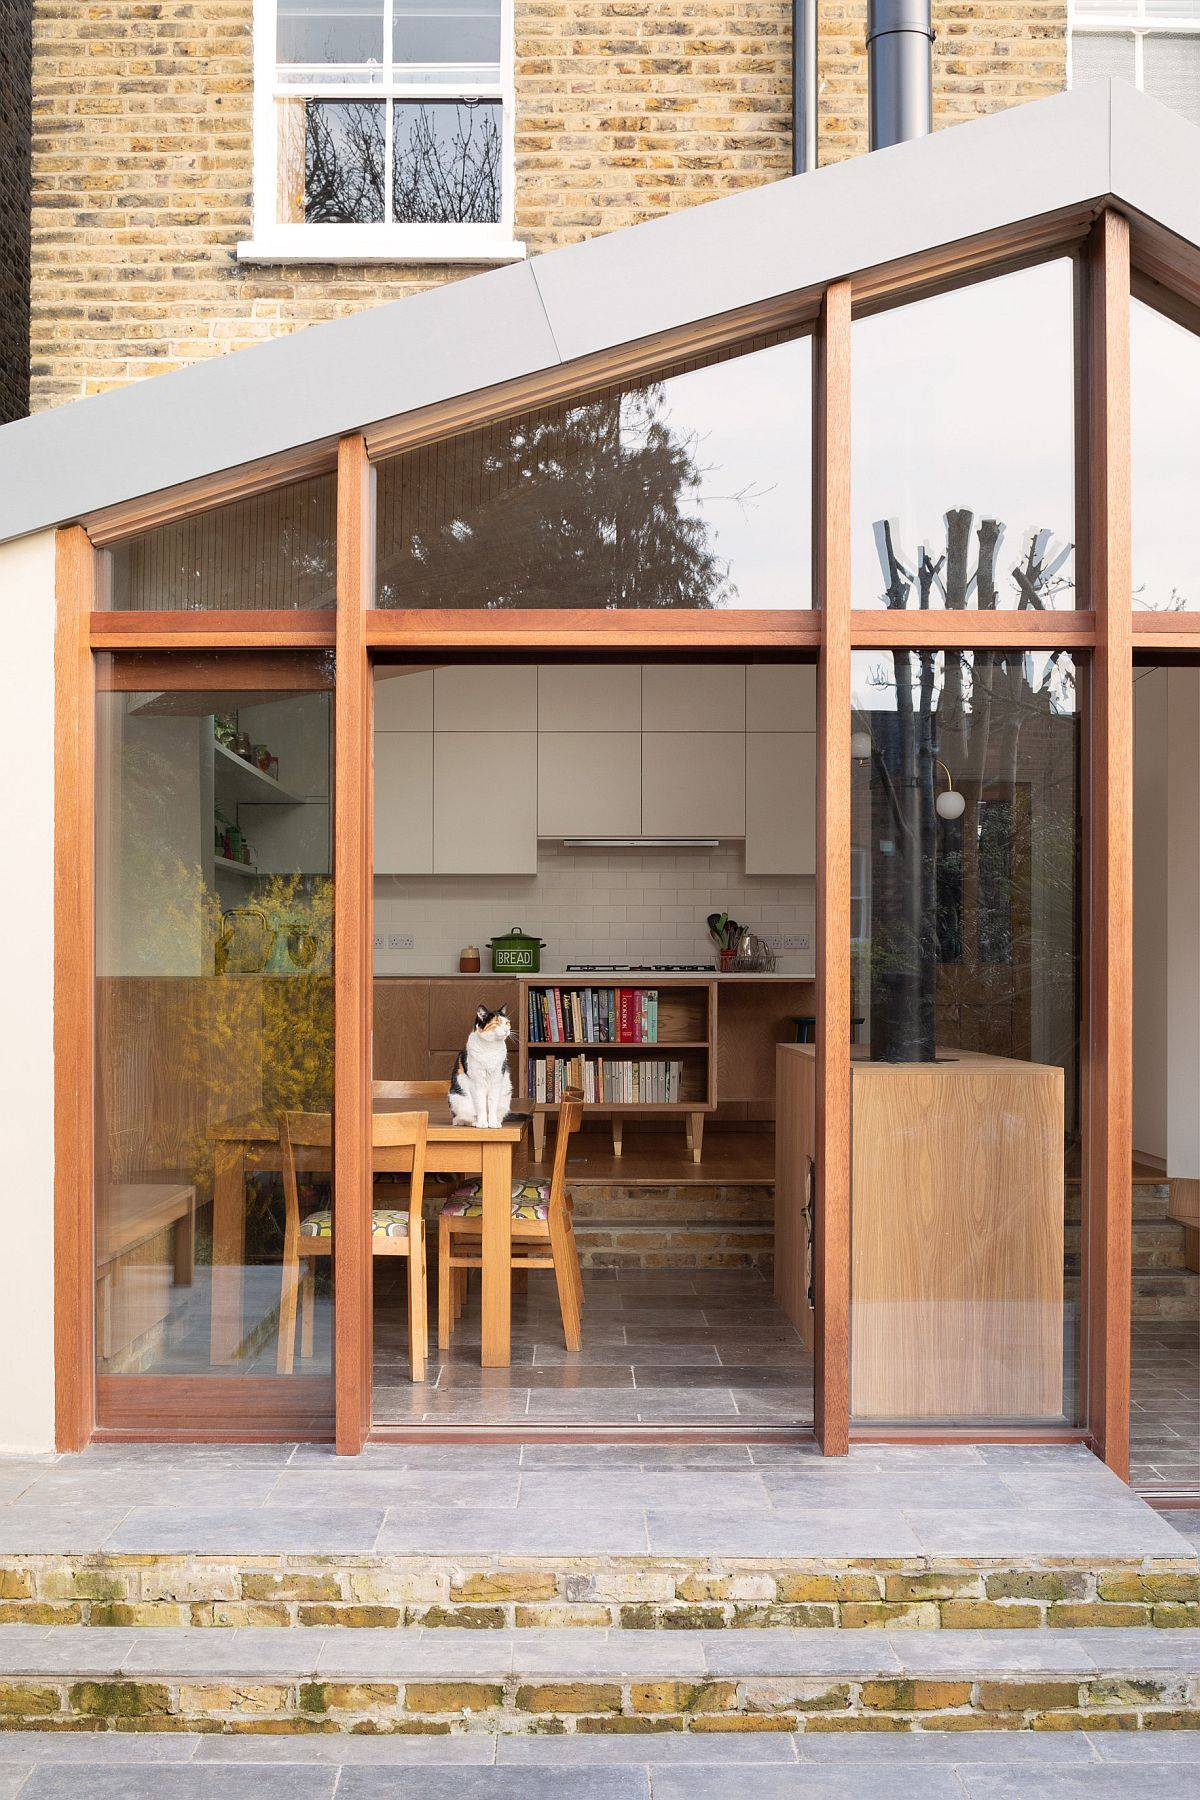 Wood-and-white-rear-extension-to-a-classic-British-home-that-replaces-an-old-tree-64880